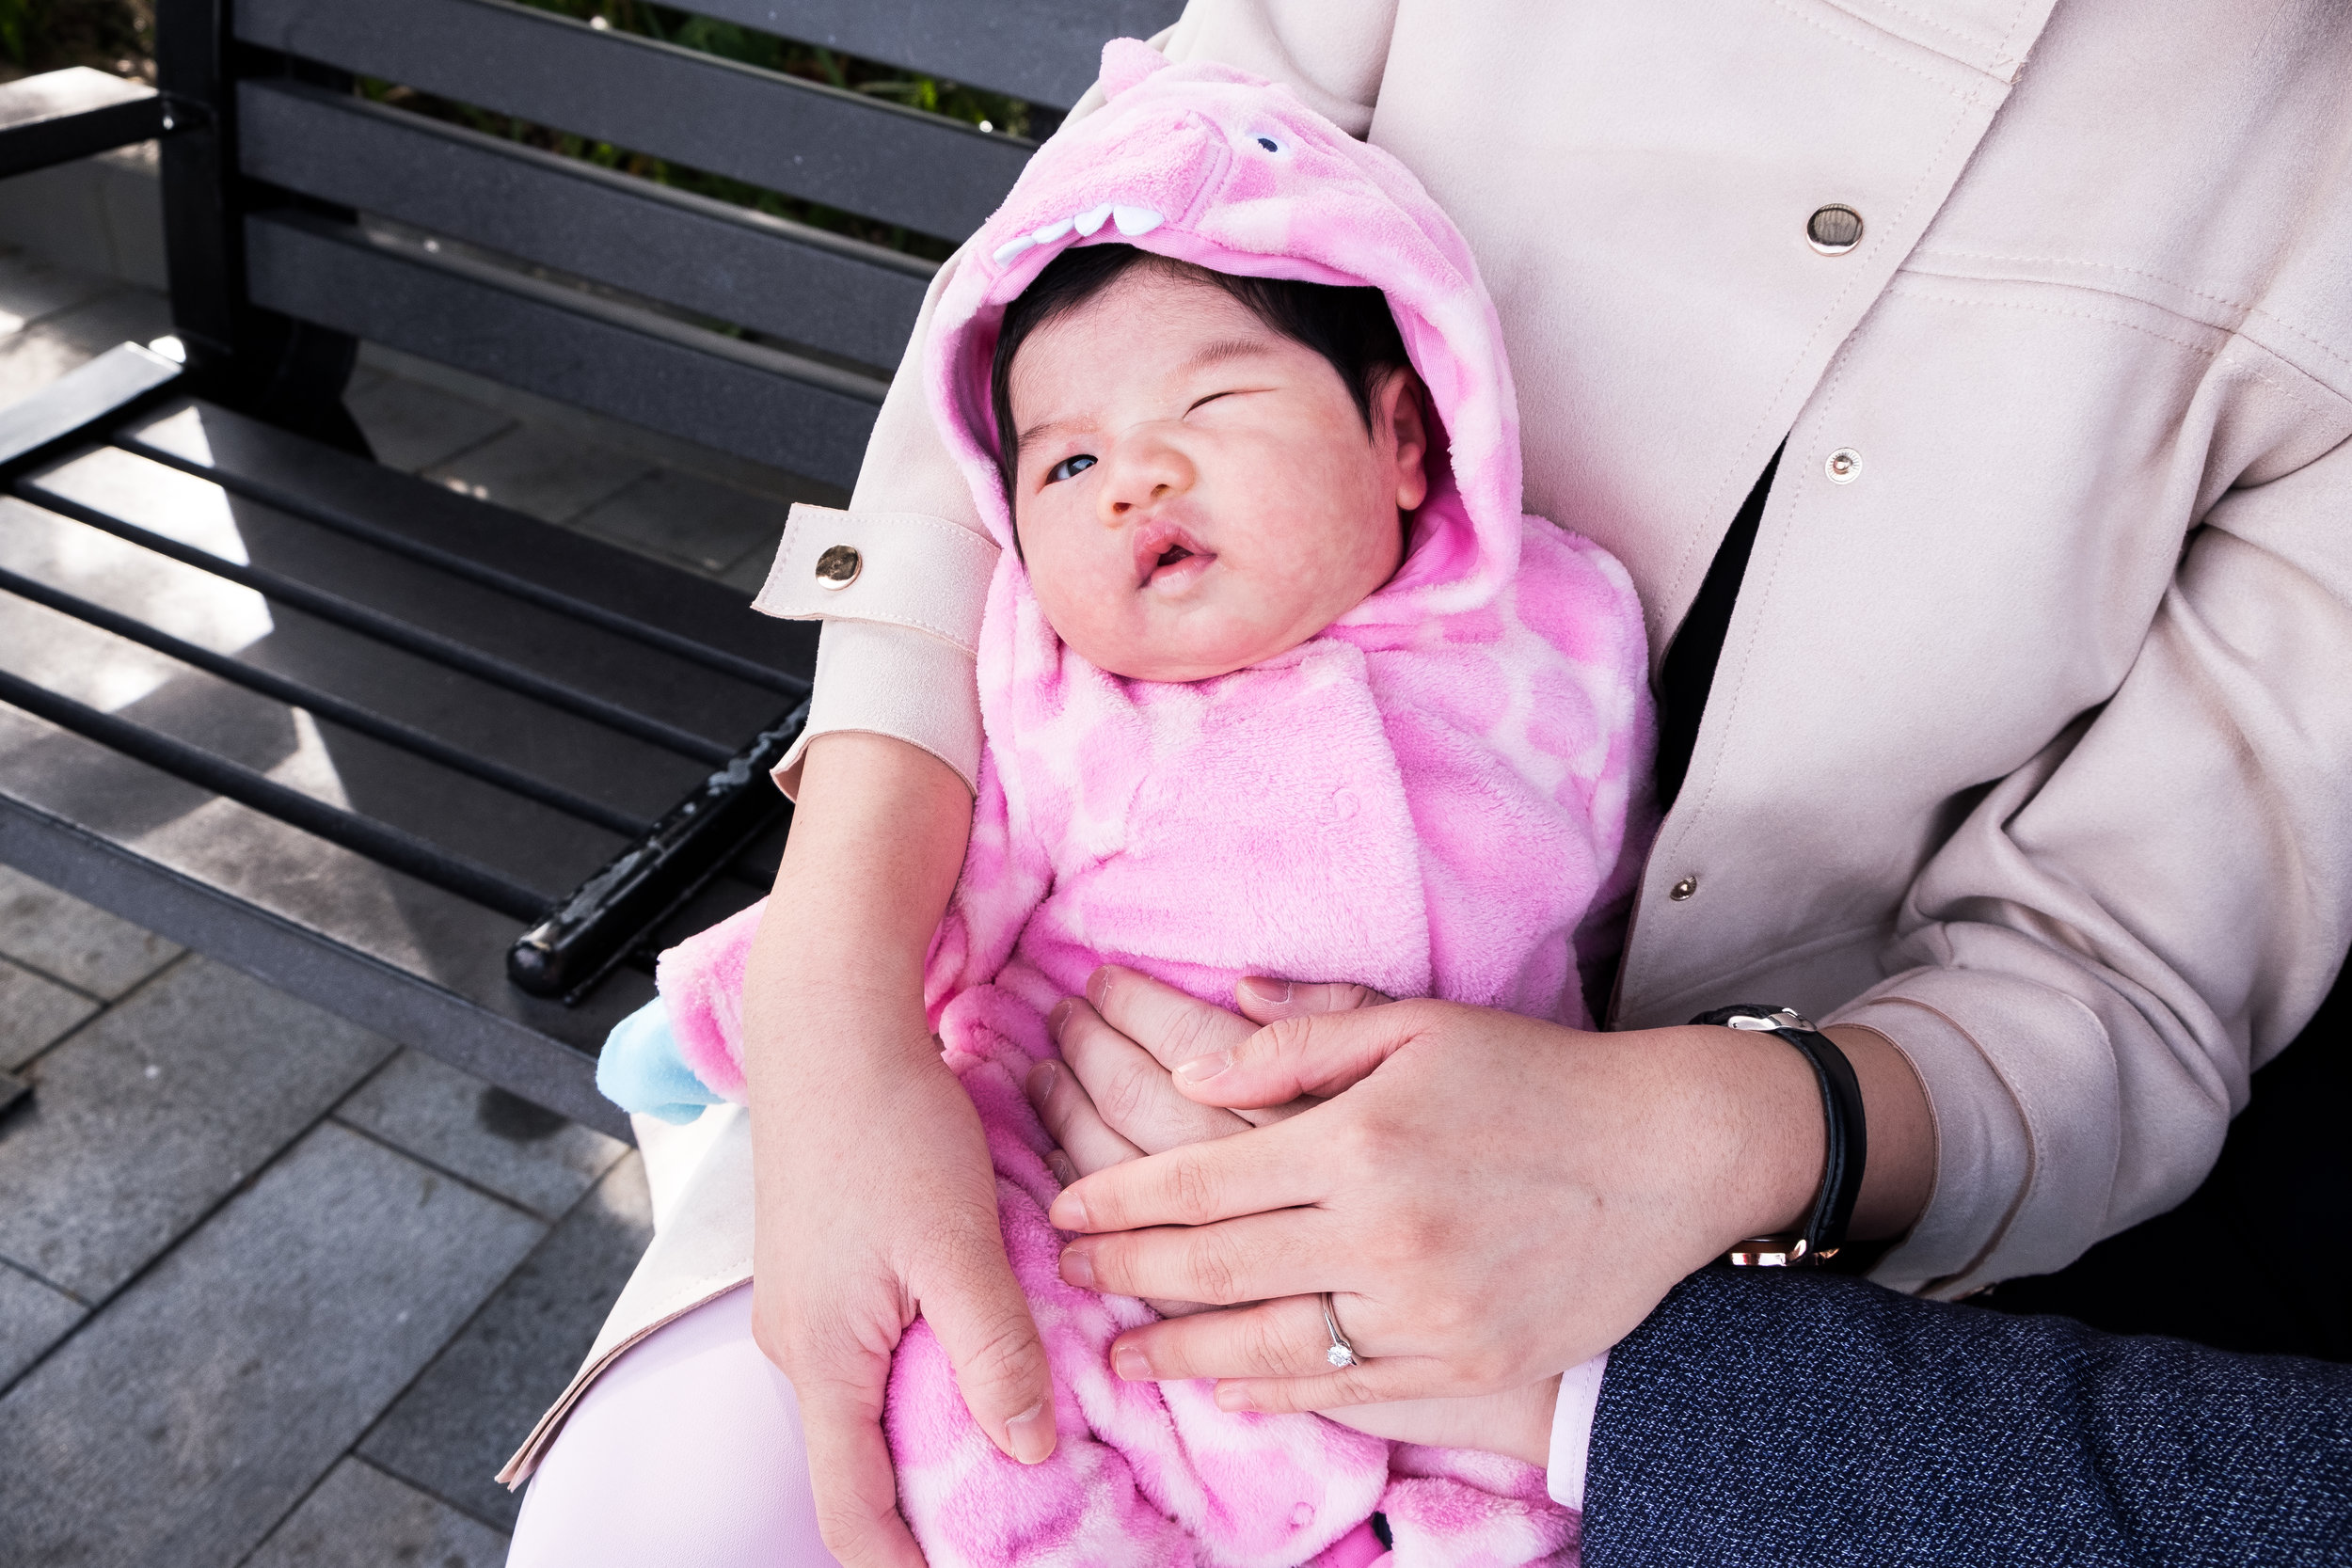 Newborn Shoot with the Tans - Shu Sze wanted to surprise her husband for his 30th birthday with a casual outdoor shoot with their newborn. It was a perfect morning with one of the nicest families around. Xin Hui was such a darling baby and was just a star in front of the camera.